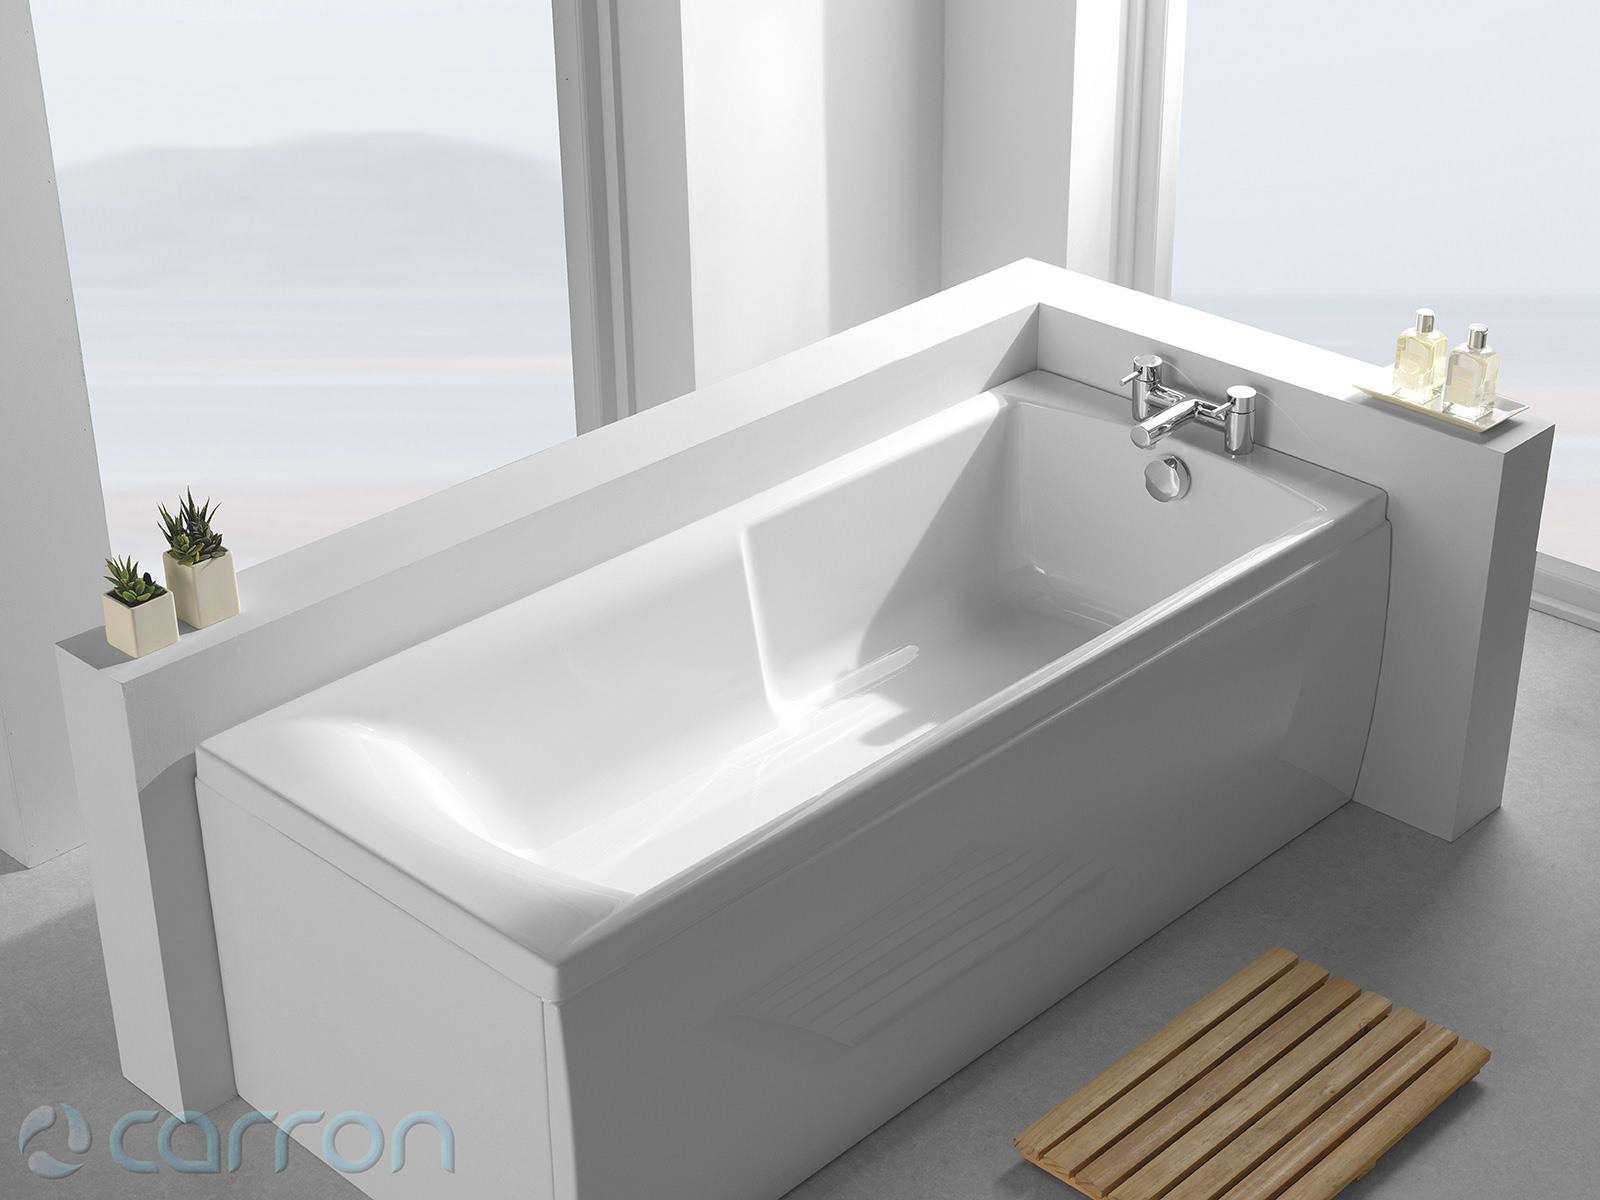 Carron Matrix 5mm Acrylic Single Ended Bath 1700 x 700mm - Q4-02126